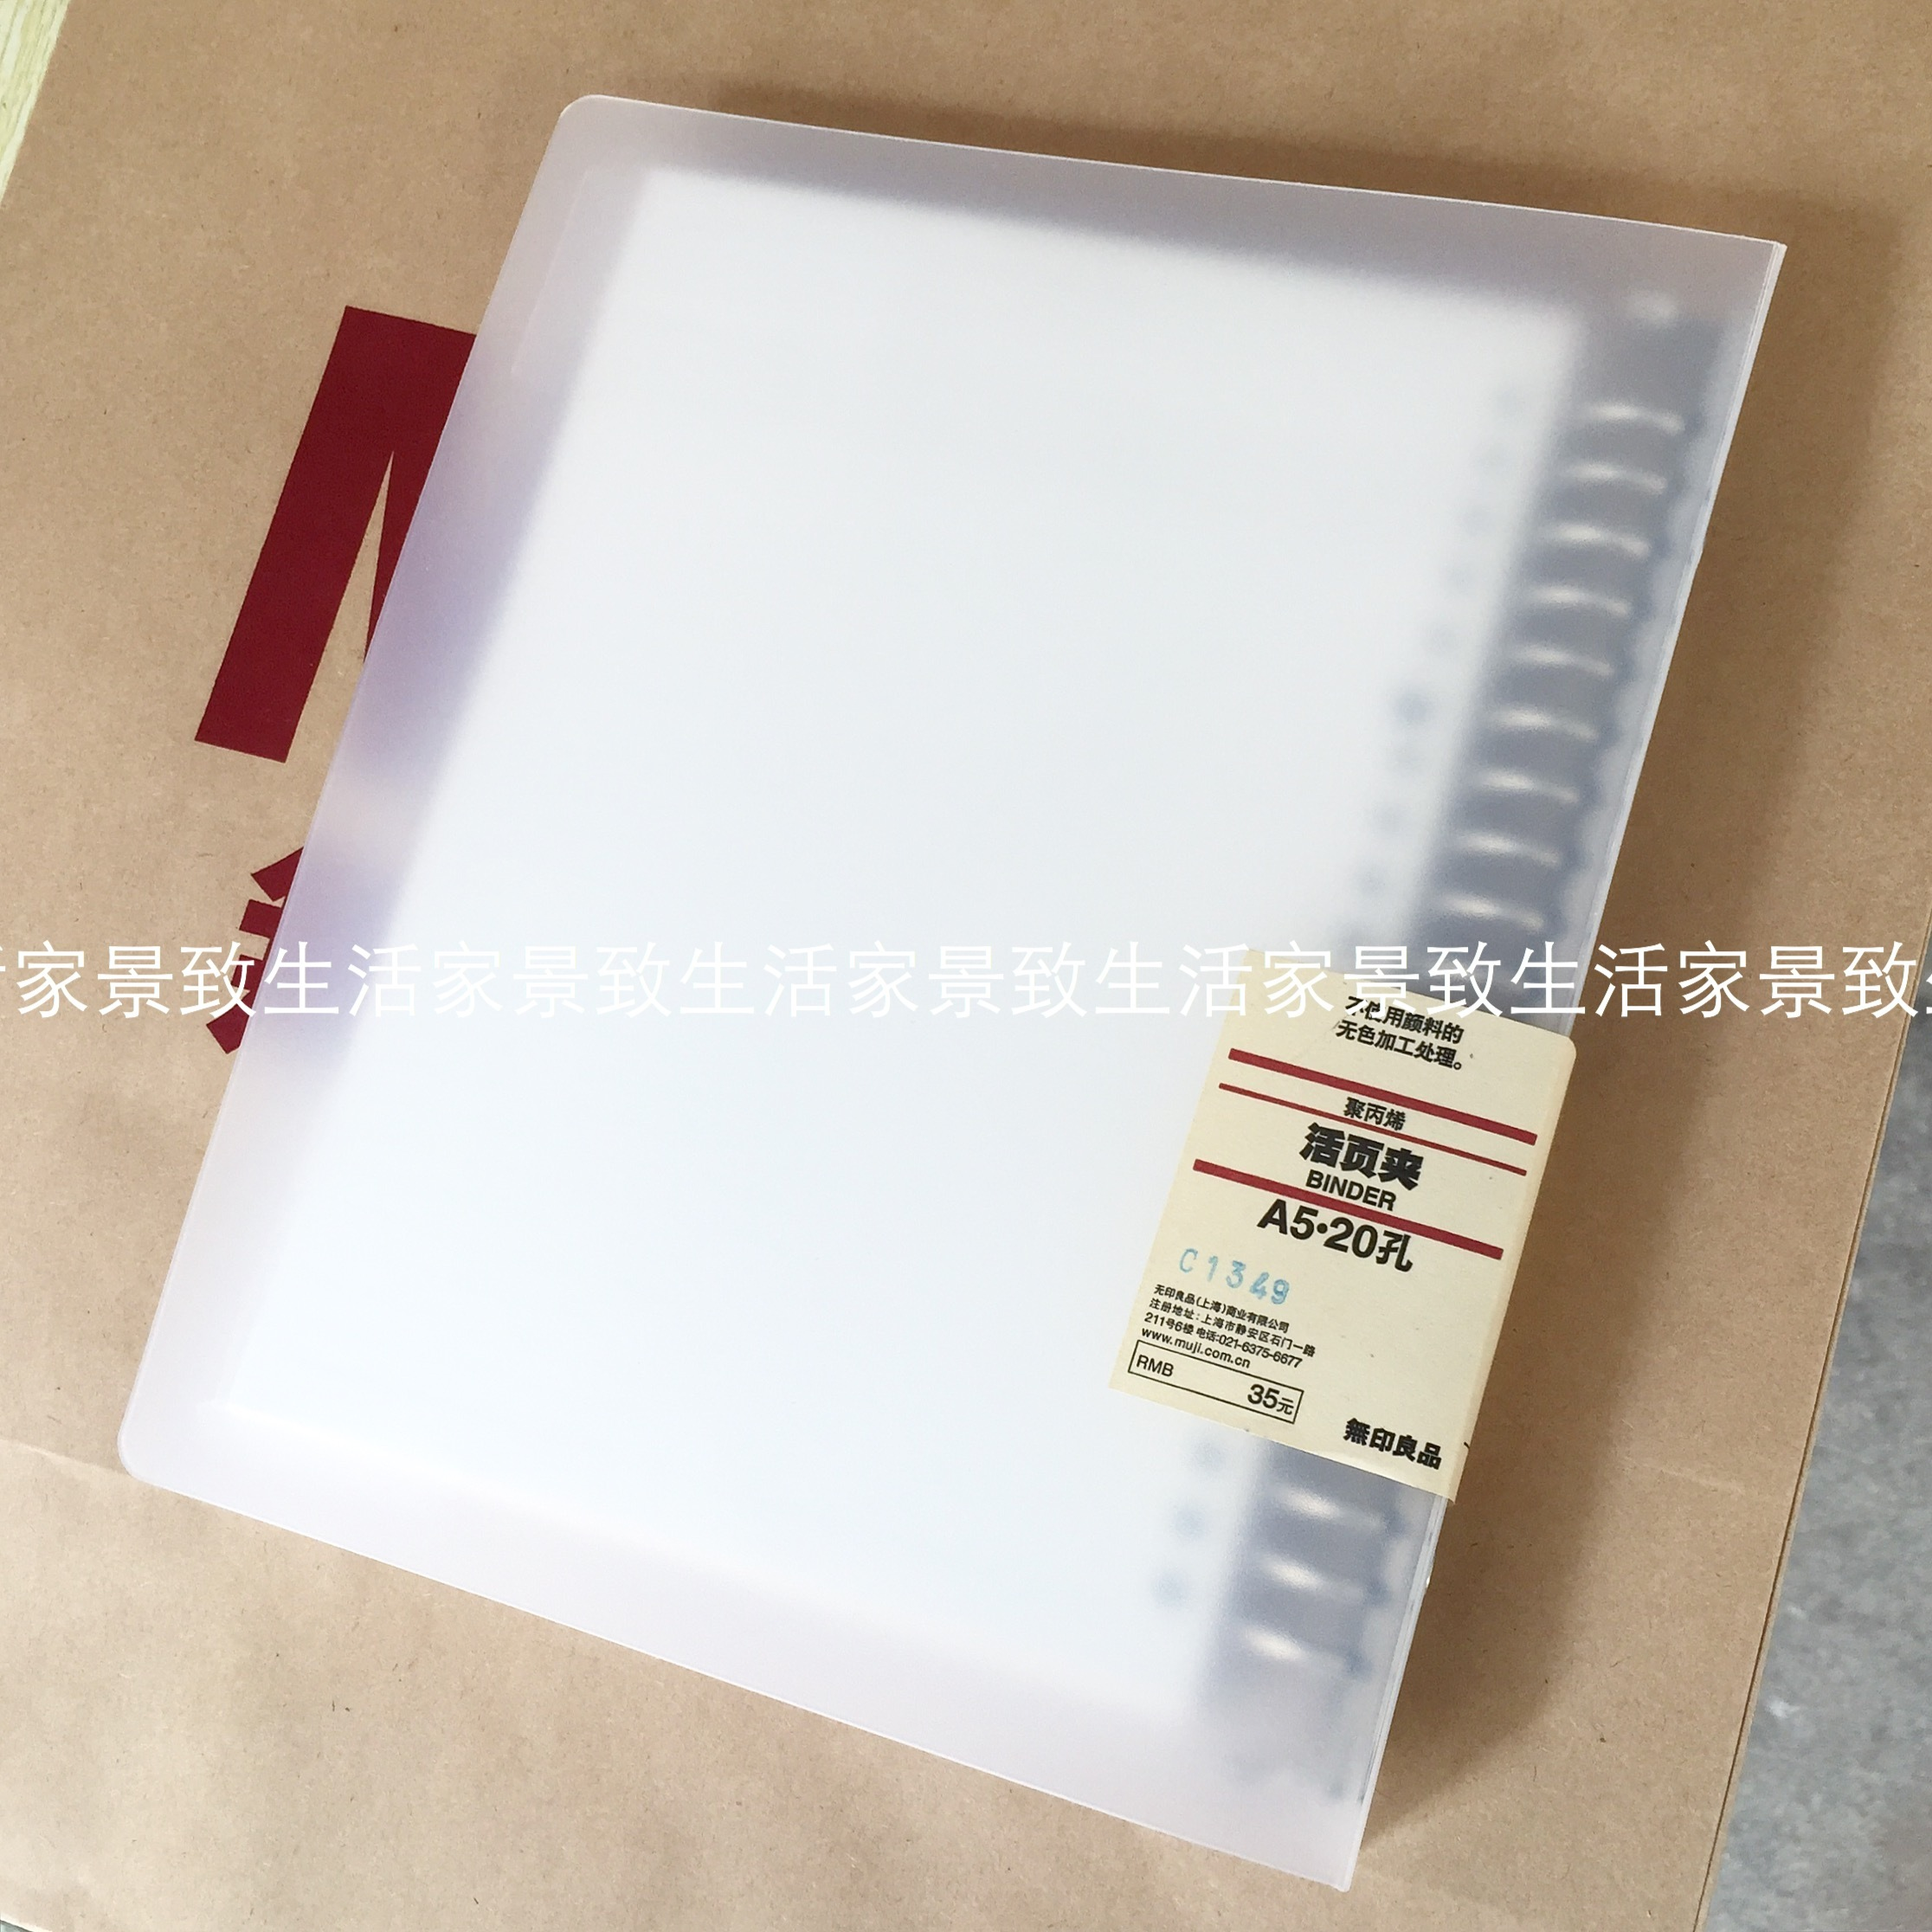 MUJI Muji loose-leaf the present paper the porous binder to Replace Paper A5 B5 A4 loose leaf paper domestic purchasing